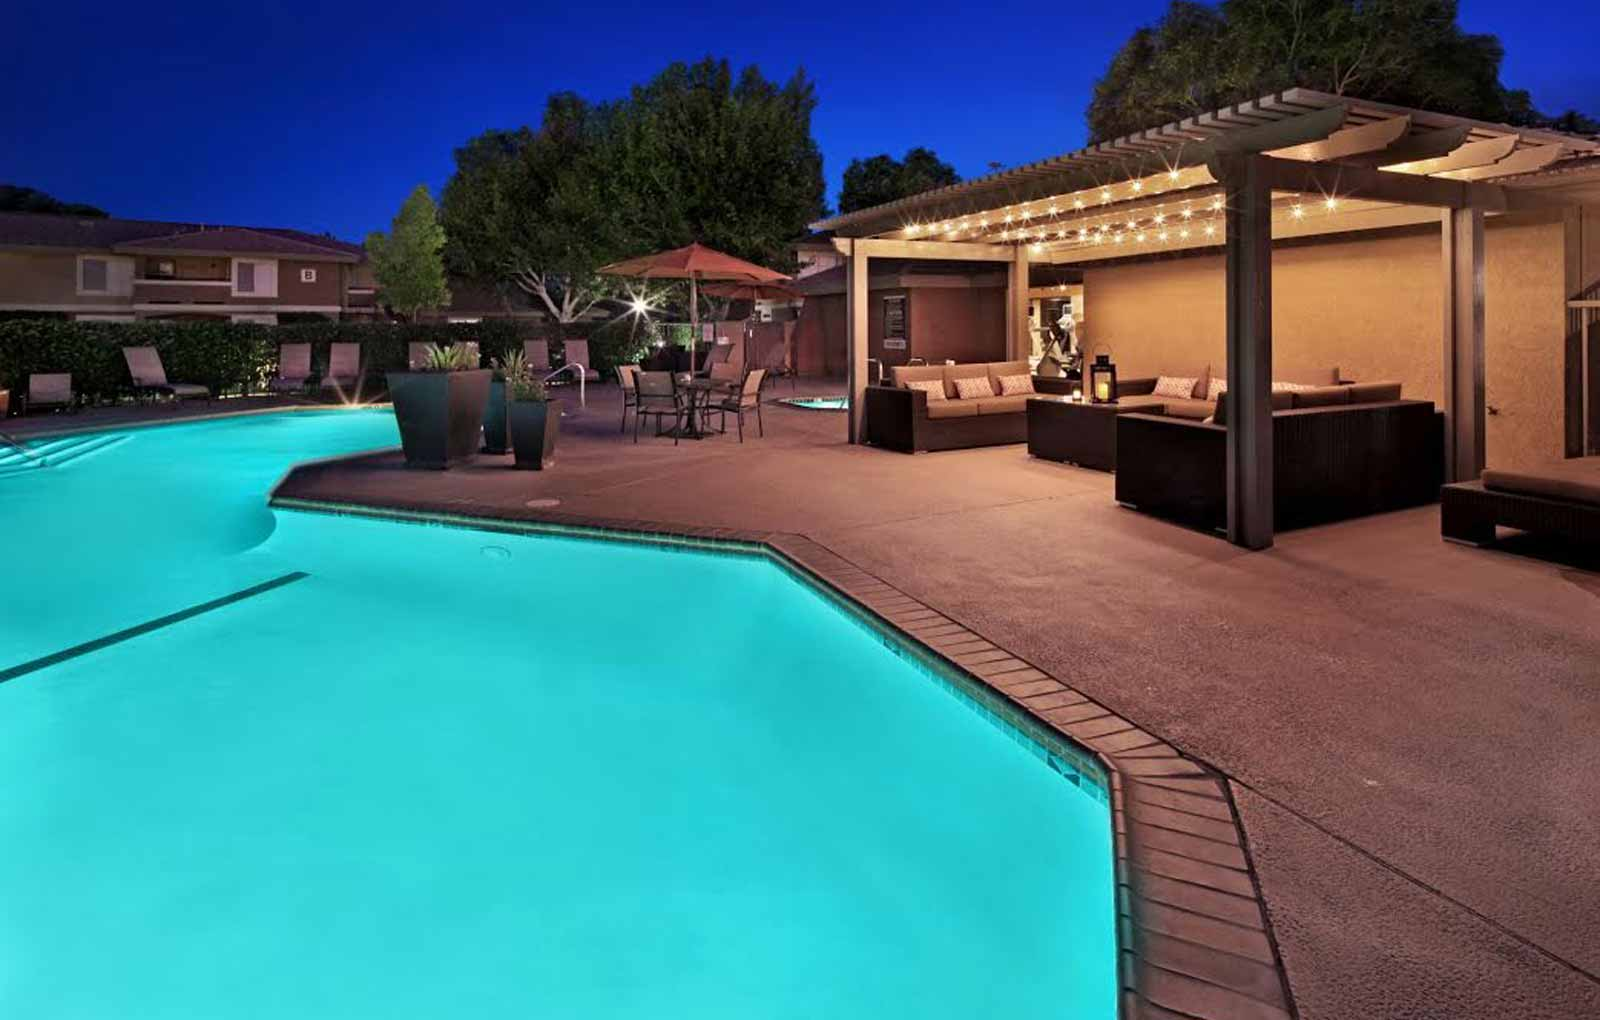 Swimming Pools with Cabana at Mirabella Apartments, California, 92203